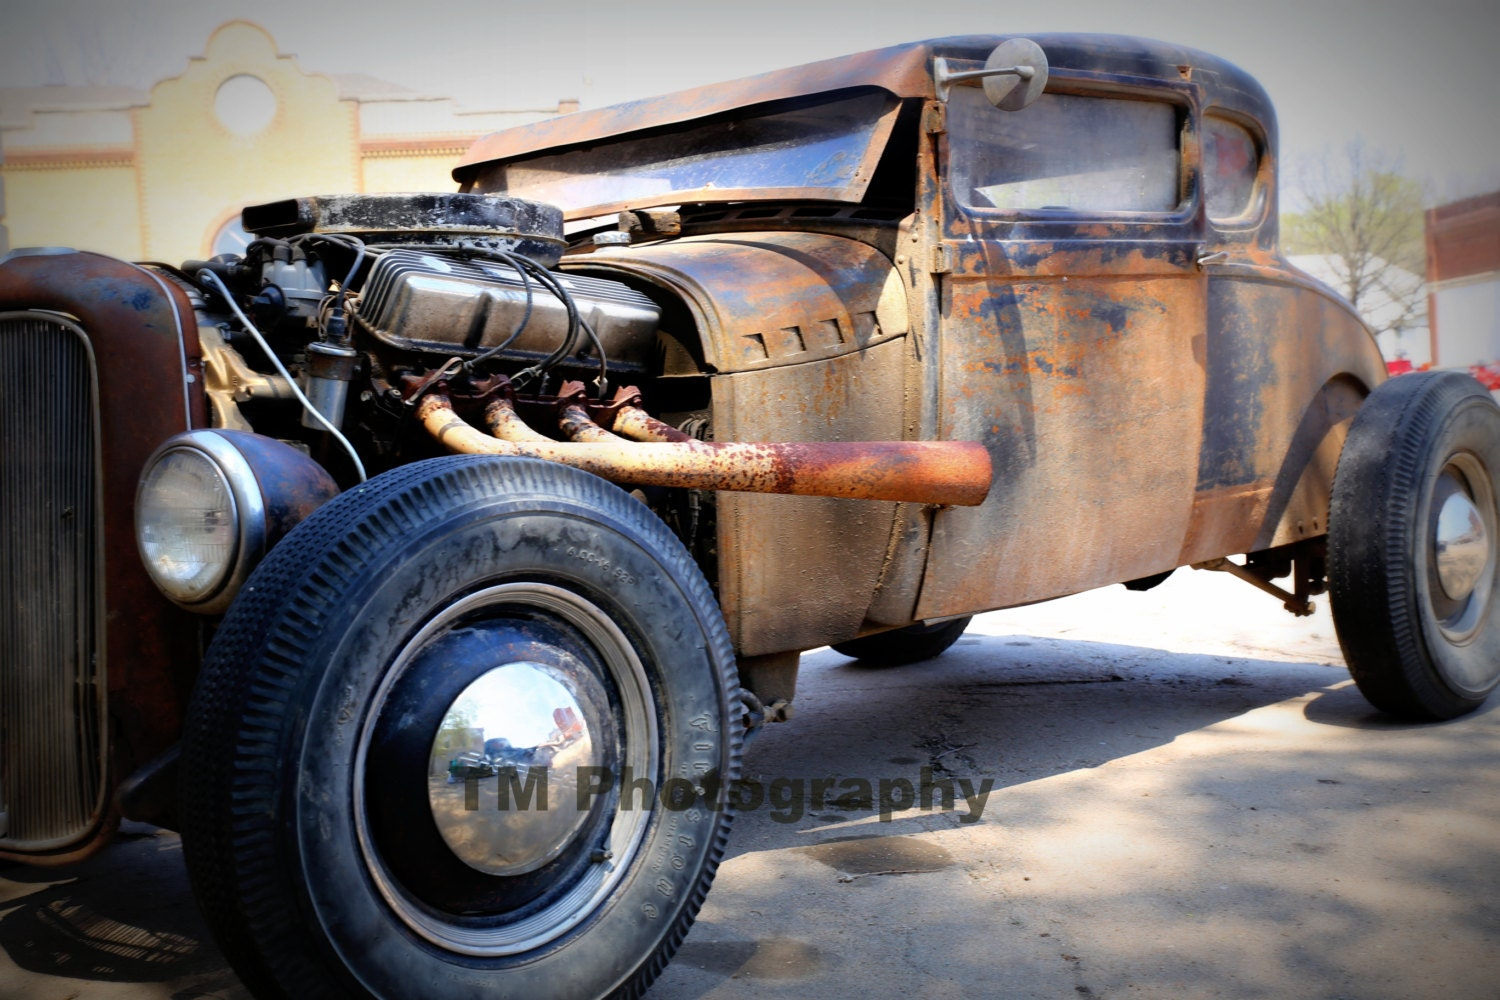 Hot Rod Old Car Old Hot Rod Rusty Old Car Rusty Hot